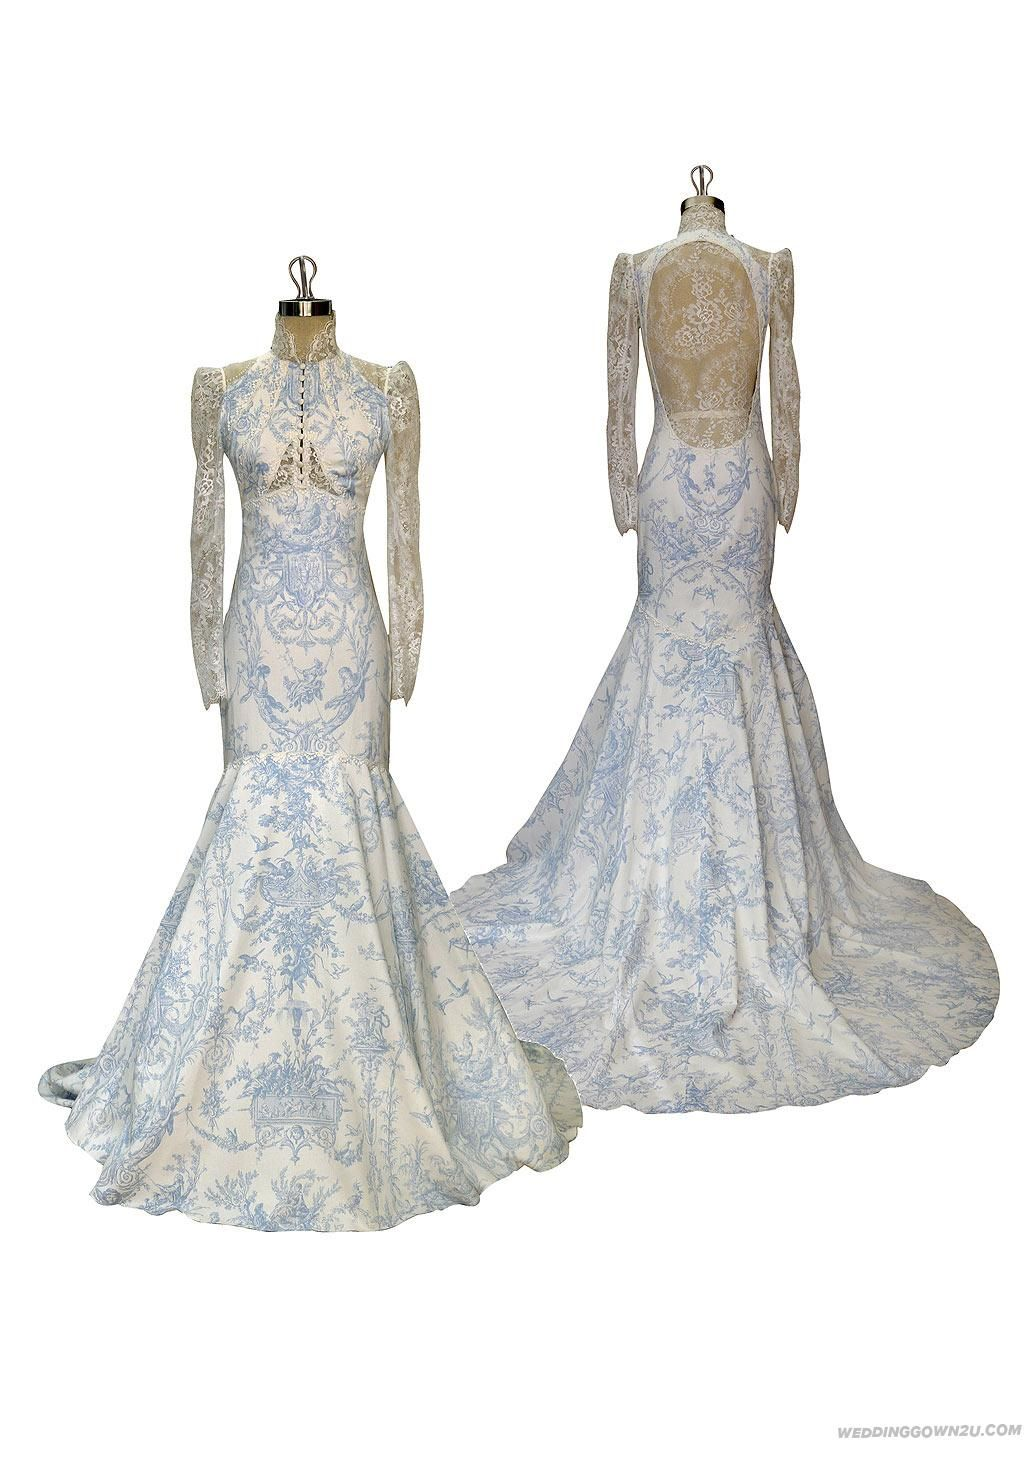 Stylish French Blue And Ivory Cotton Toile Wedding Dress Inexpensive Mermaid Gowns For Your Choice